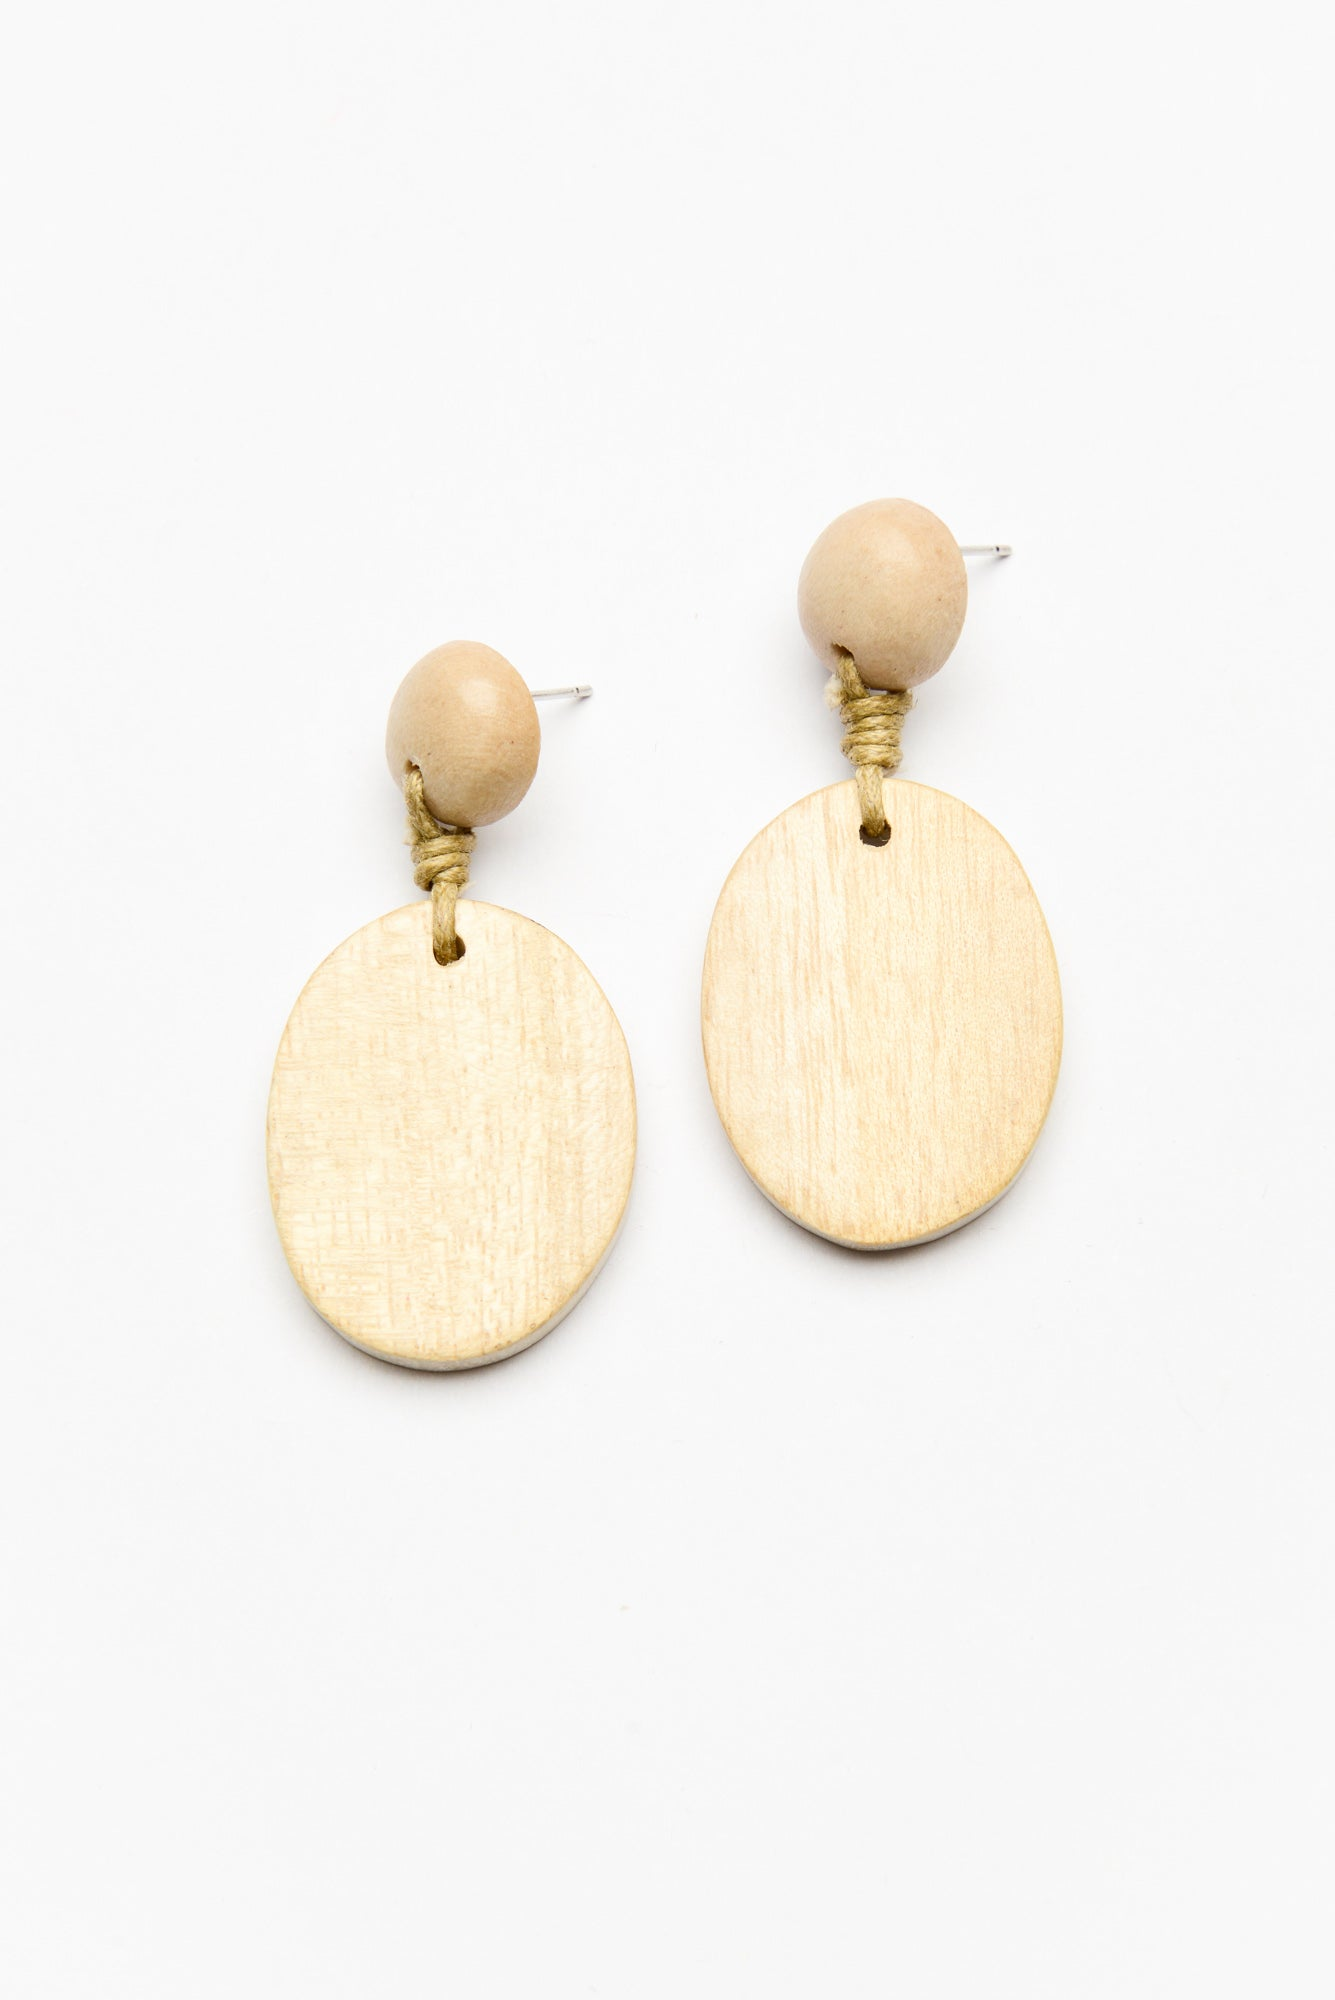 Natural Oval Drop Timber Earrings - Blue Bungalow